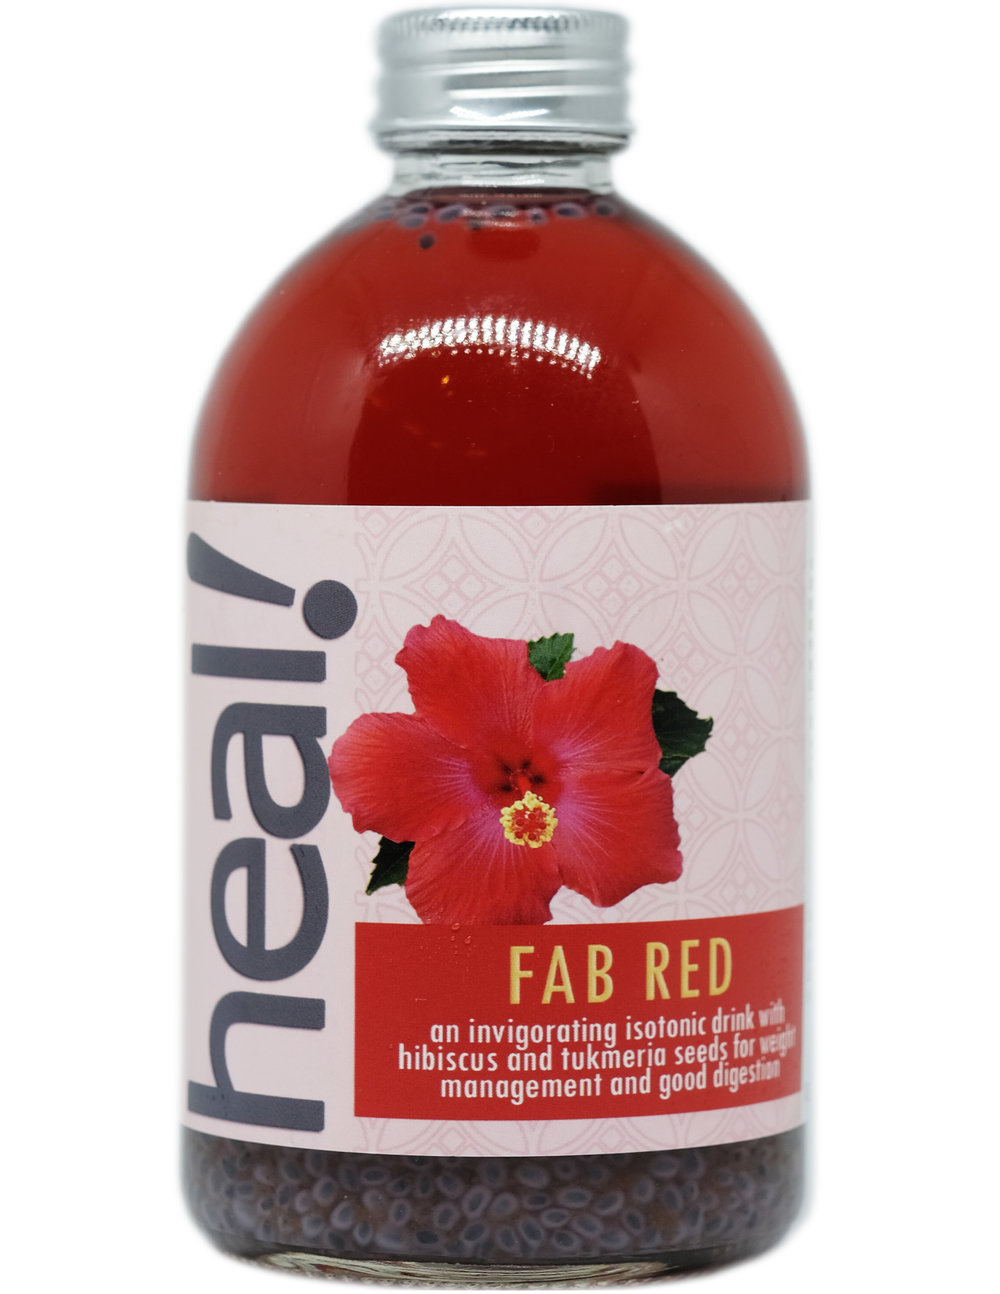 Fab Red owes its most gorgeous color to the healthy hibiscus tea. It is an isotonic probiotic blend of water kefir and kombucha, giving you more varieties of probiotic strains for a healthier you.  The benefits of hibiscus include relief from high blood pressure, high cholesterol, digestive, immune system, and inflammatory problems. It protects liver and helps manage bodyweight. Hibiscus is rich in vitamin C, minerals and various antioxidants.  In Indonesia we consume tukmeria seeds for the taste, fiber contents, ability to cool down body fast, constipation relief, blood sugar regulation, and weight management.  Ingredients: Mineral Water, Kombucha Cultures, Water Kefir Cultures, Hibiscus Tea, Tukmeria Seeds, Mint Leaves, Jawa Oolong Tea, Natural Cane Sugar  Calorie 35, Sugar 4 grams per 175 ml before second fermentation, by which process reduces calorie and sugar content further and create fizz.  Packaged in reusable,  refundable  glass bottle, 370 ml.  RECIPE  click here   CONTACT US  click here